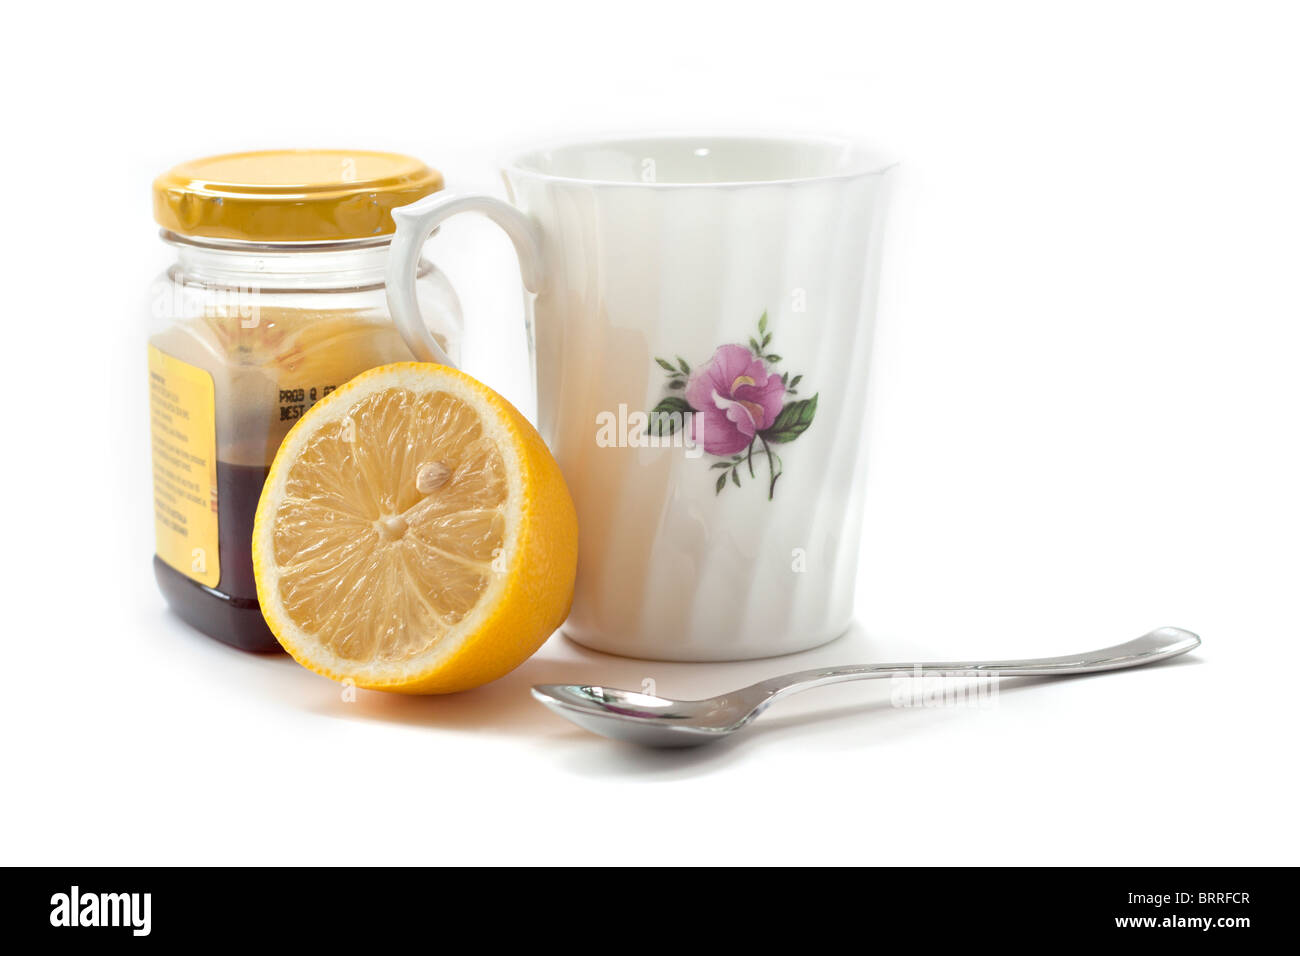 Lemon and honey with mug and spoon for a soothing winter drink in cold and flu season - Stock Image